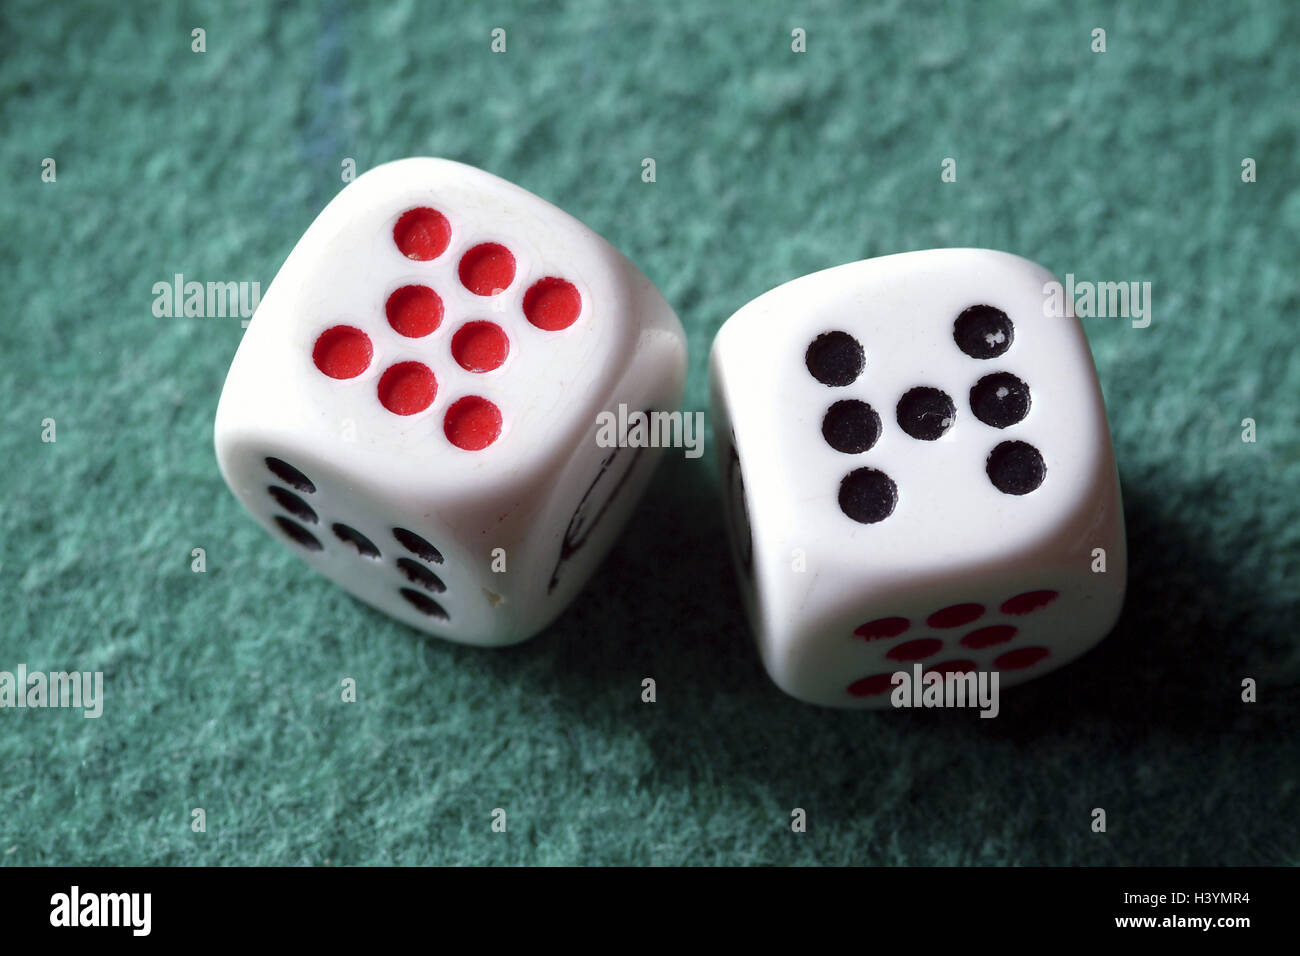 Cubes, numbers, unusually, craps, throw, game chance, craps, profit success, decision, eight, seven, game cube, Stock Photo